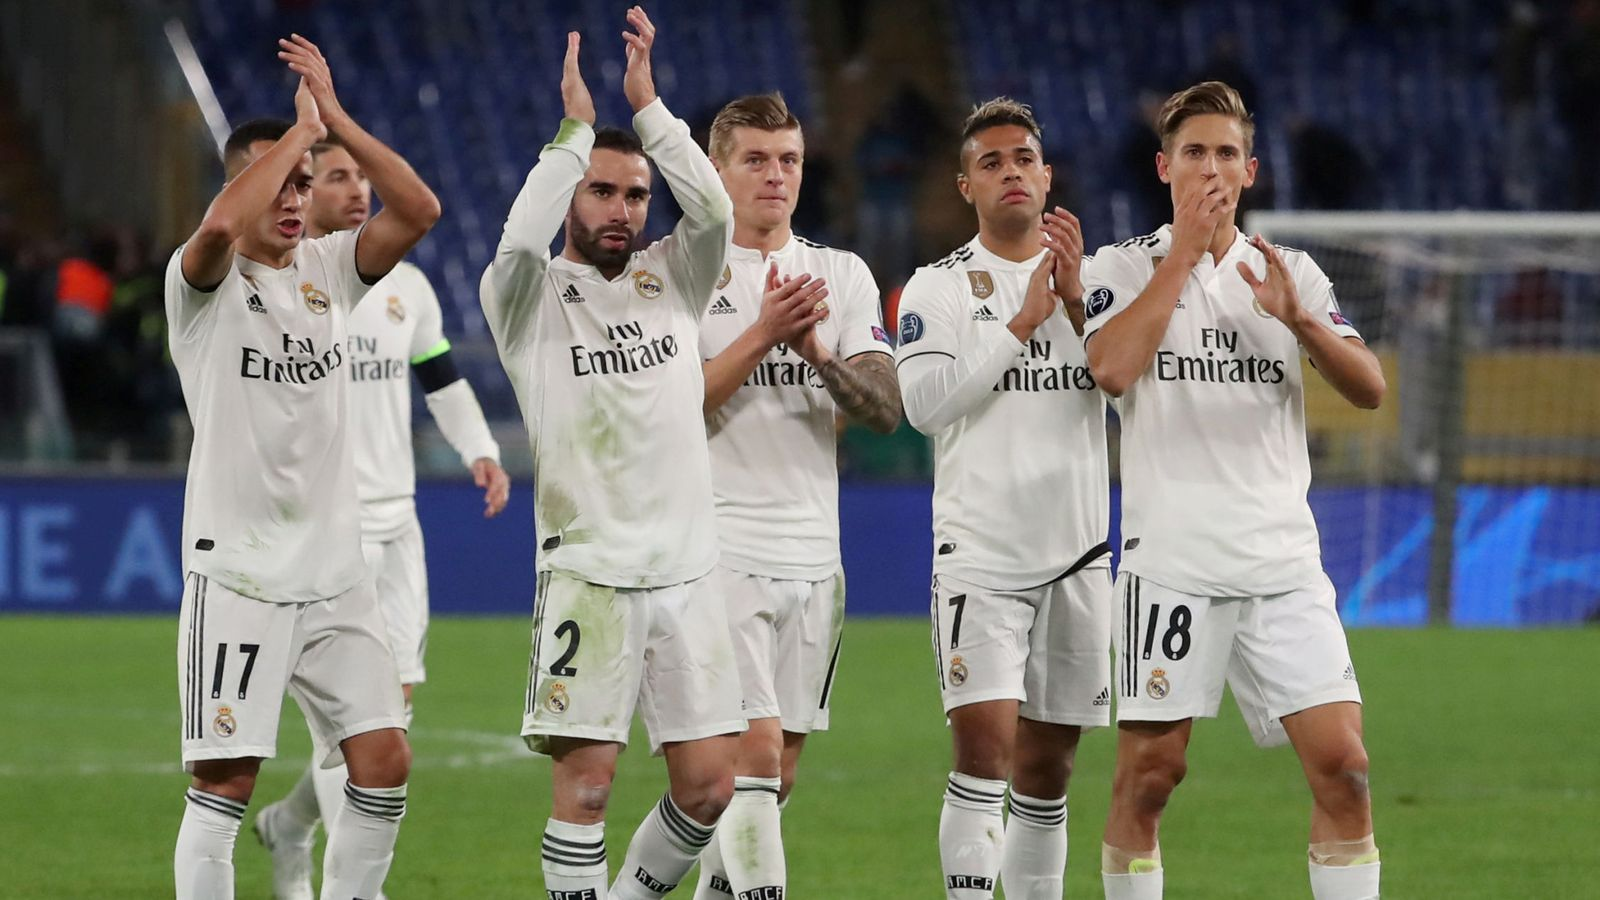 Foto: File photo: champions league - group stage - group g - as roma v real madrid